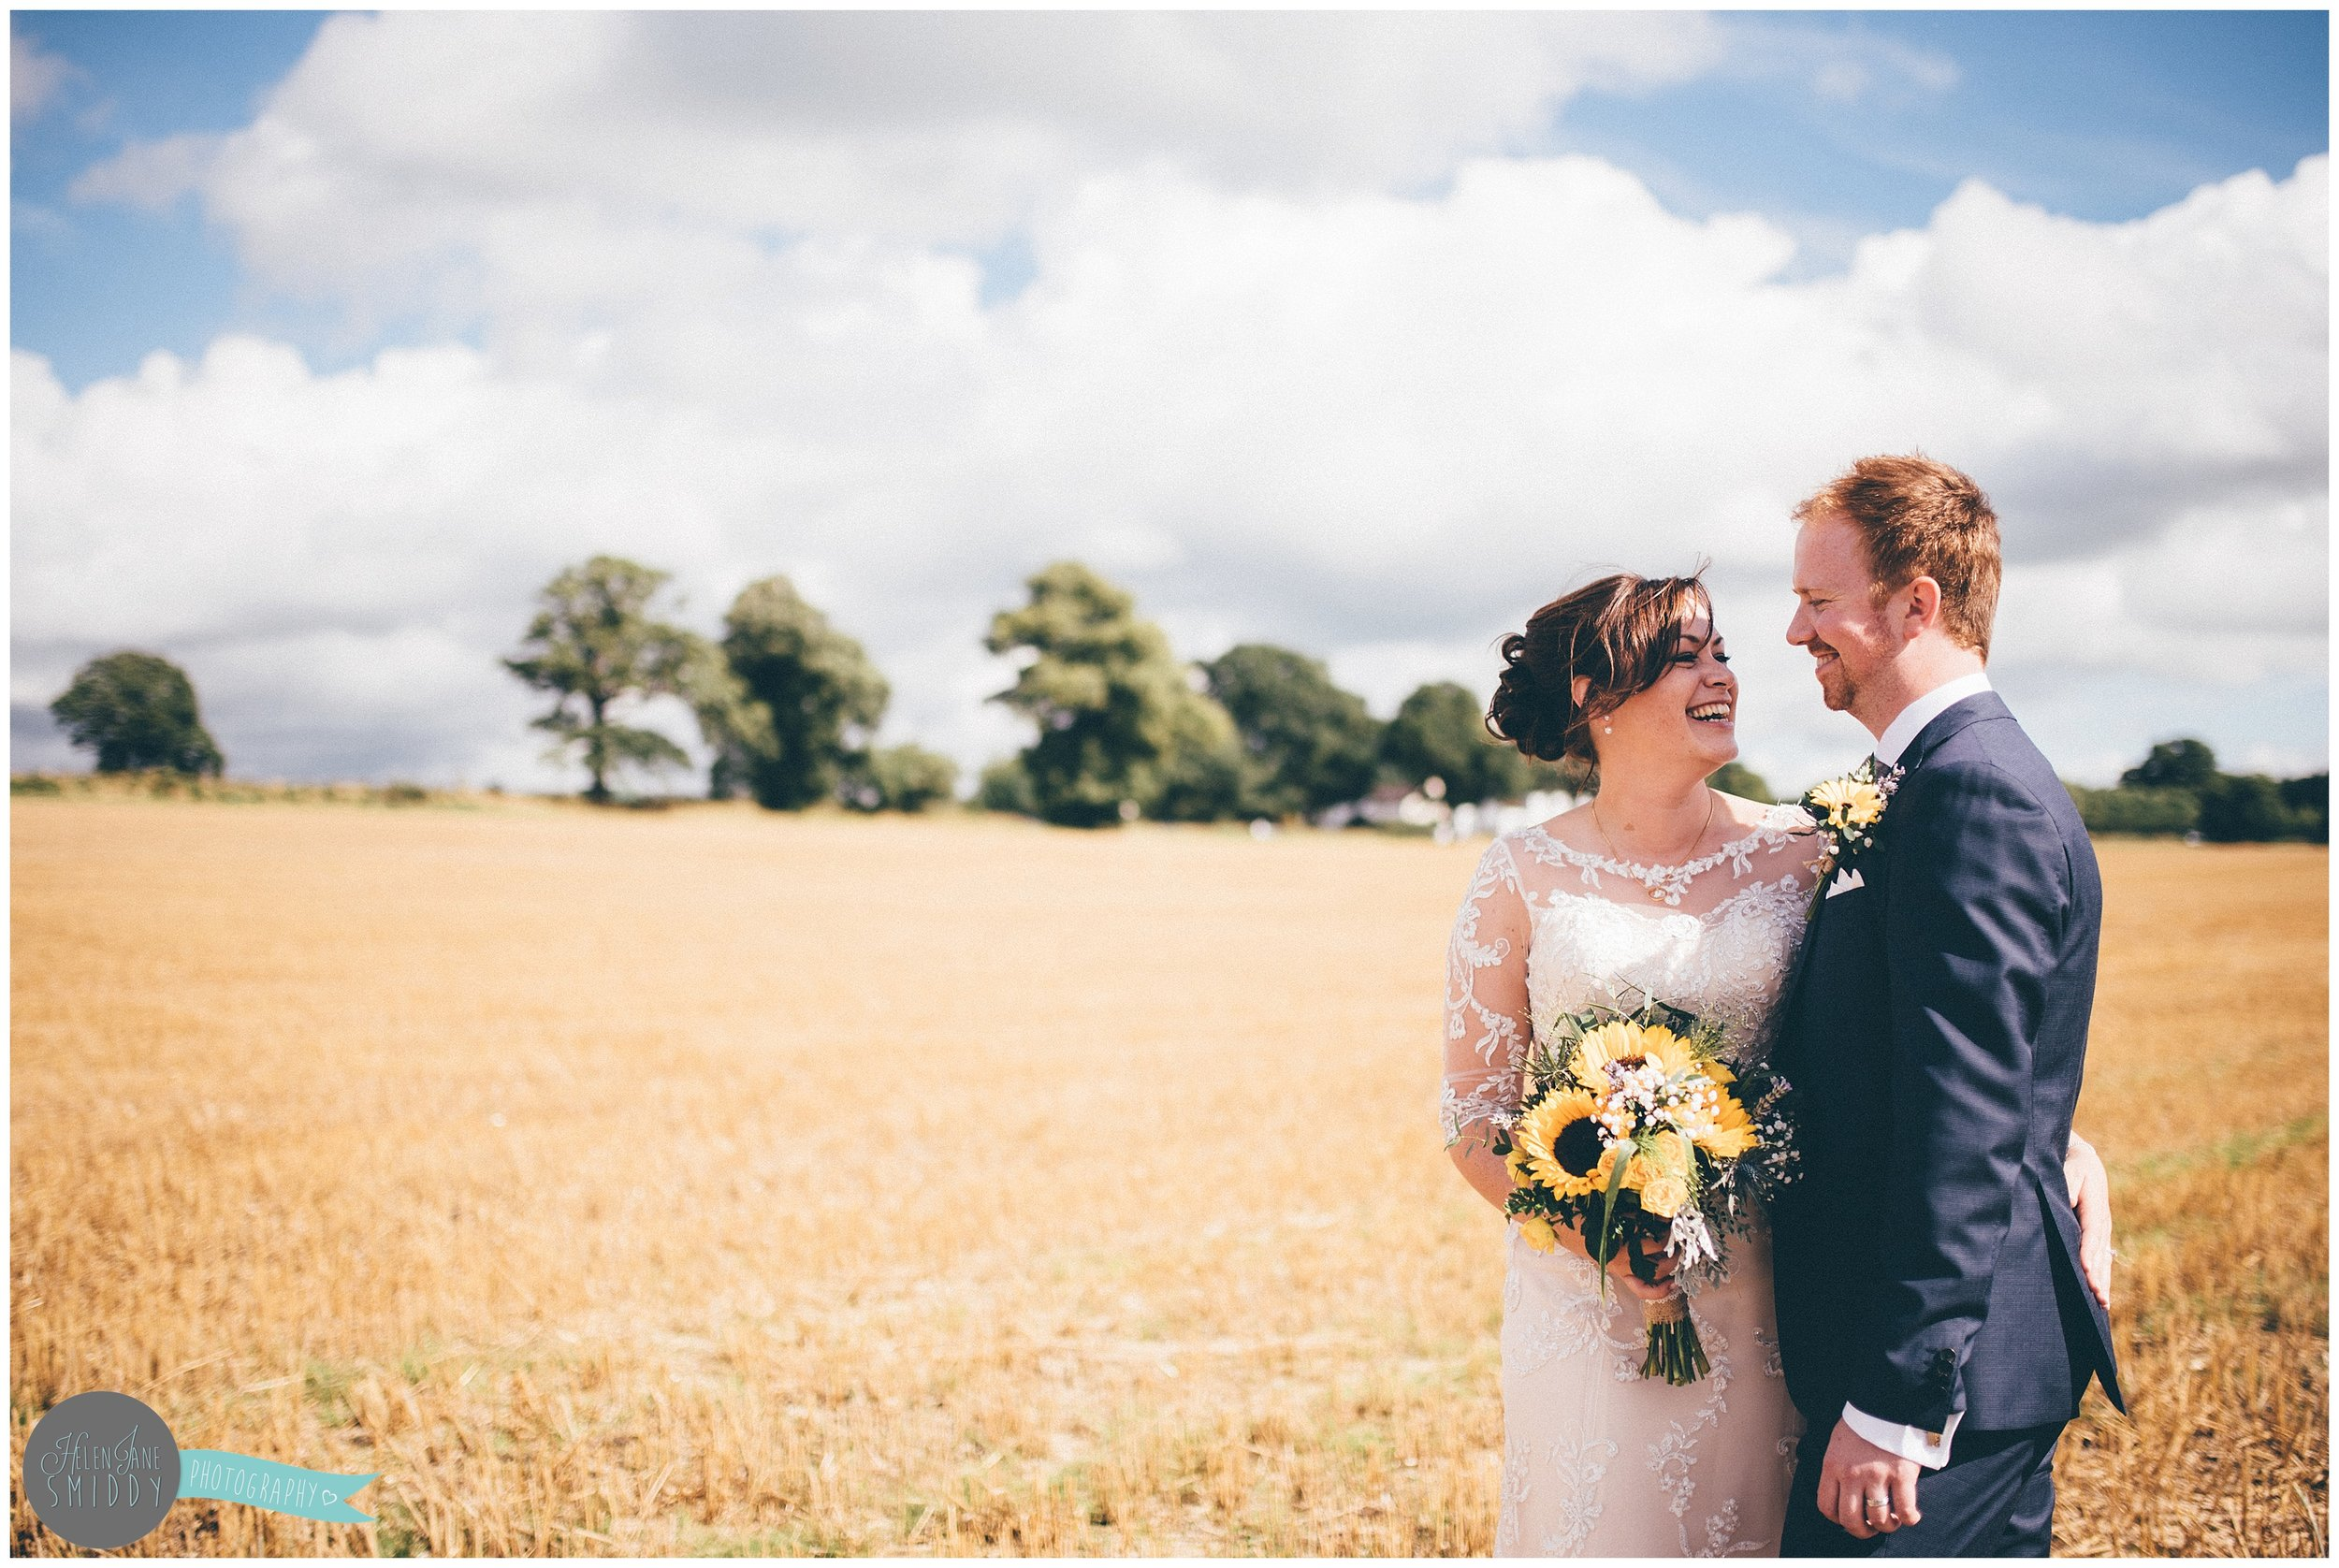 cheshire-cheshirewedding-cheshireweddingphotographer-cheshire-wedding-photographer-sandhole-oak-barn-sandholeoakbarn-wedding-photography-weddingphotography-bride-groom-brideandgroom-relaxed-rustic-wedding-sunflowers-bouncy-castle-DIY-wedding-firstdance-first-dance-balloons